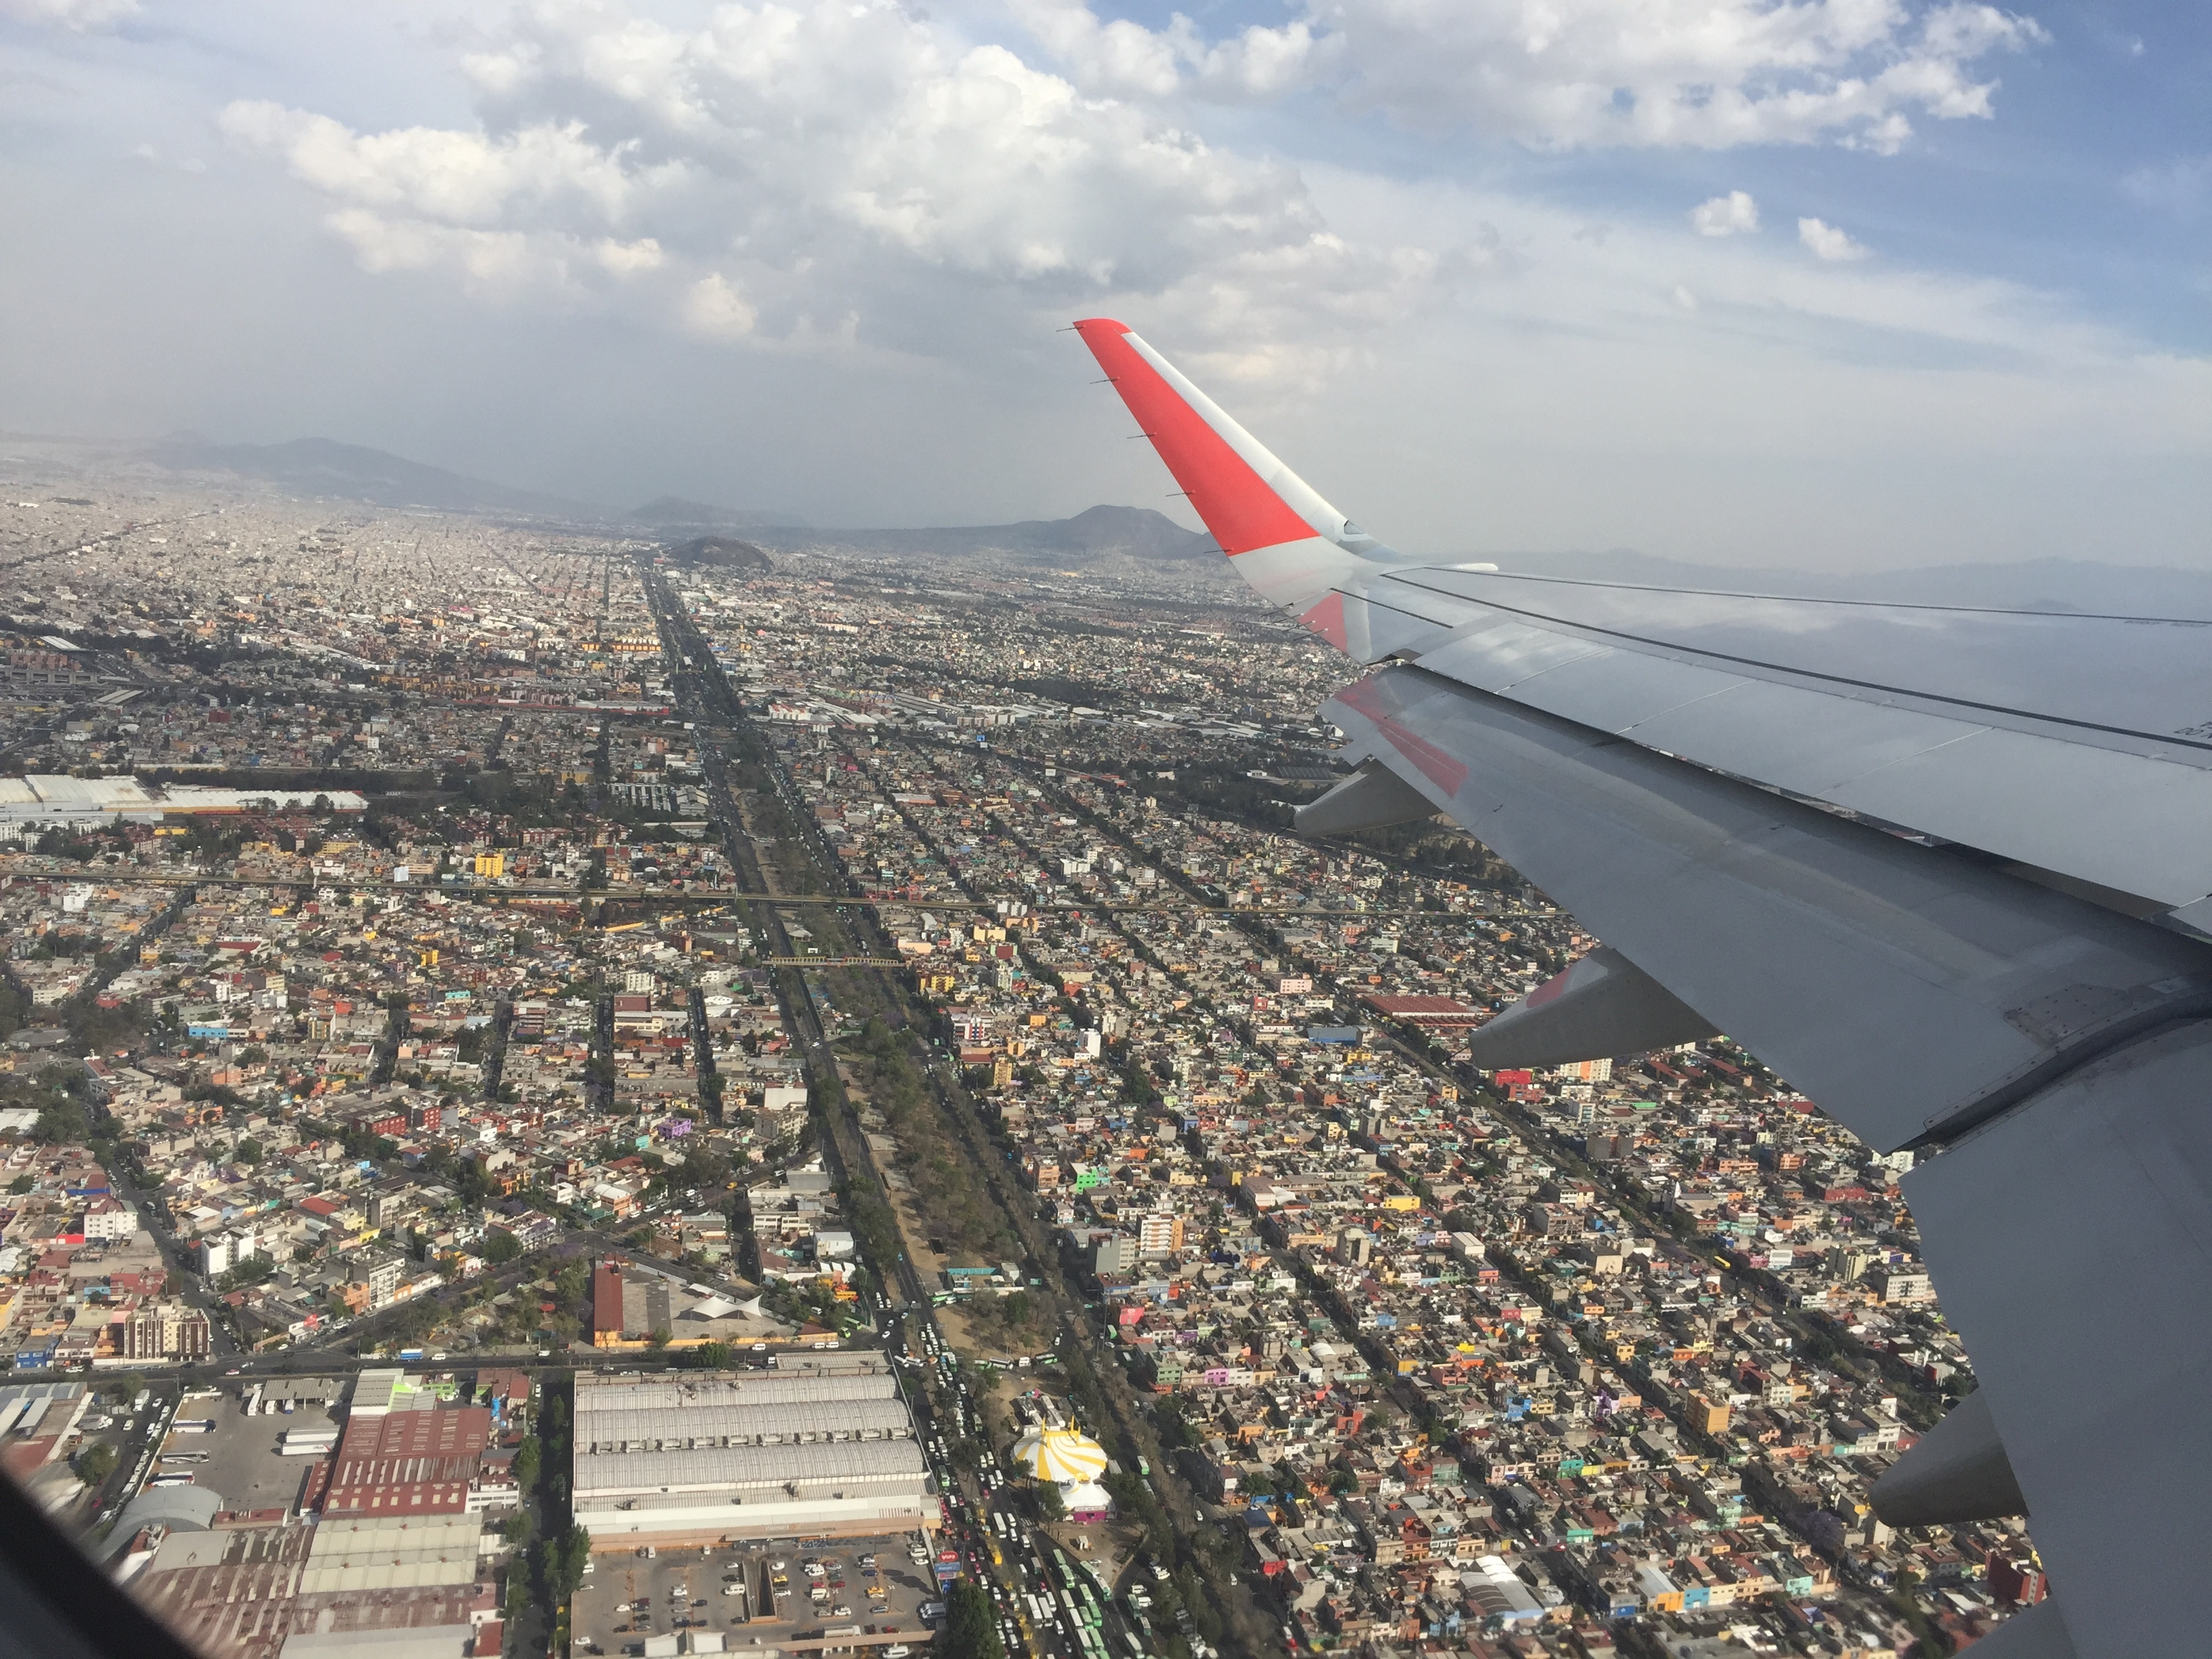 Mexico City as seen from a plane taking off.